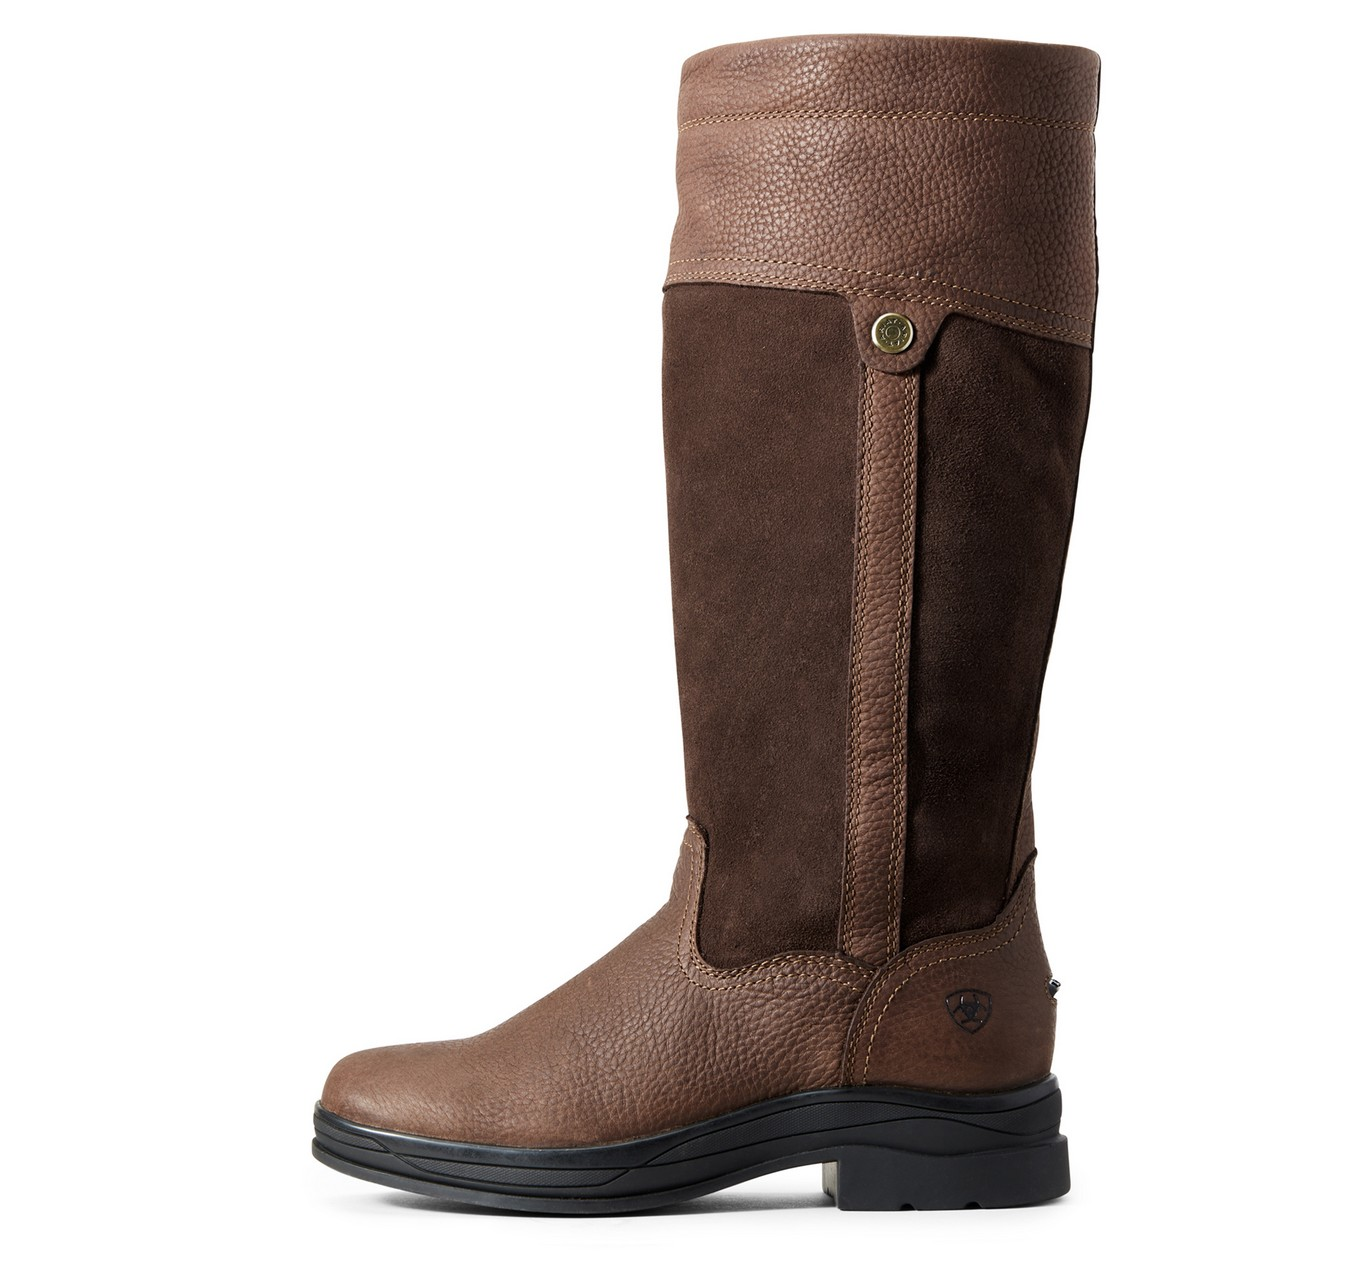 Windermere II Boots Brown 8R